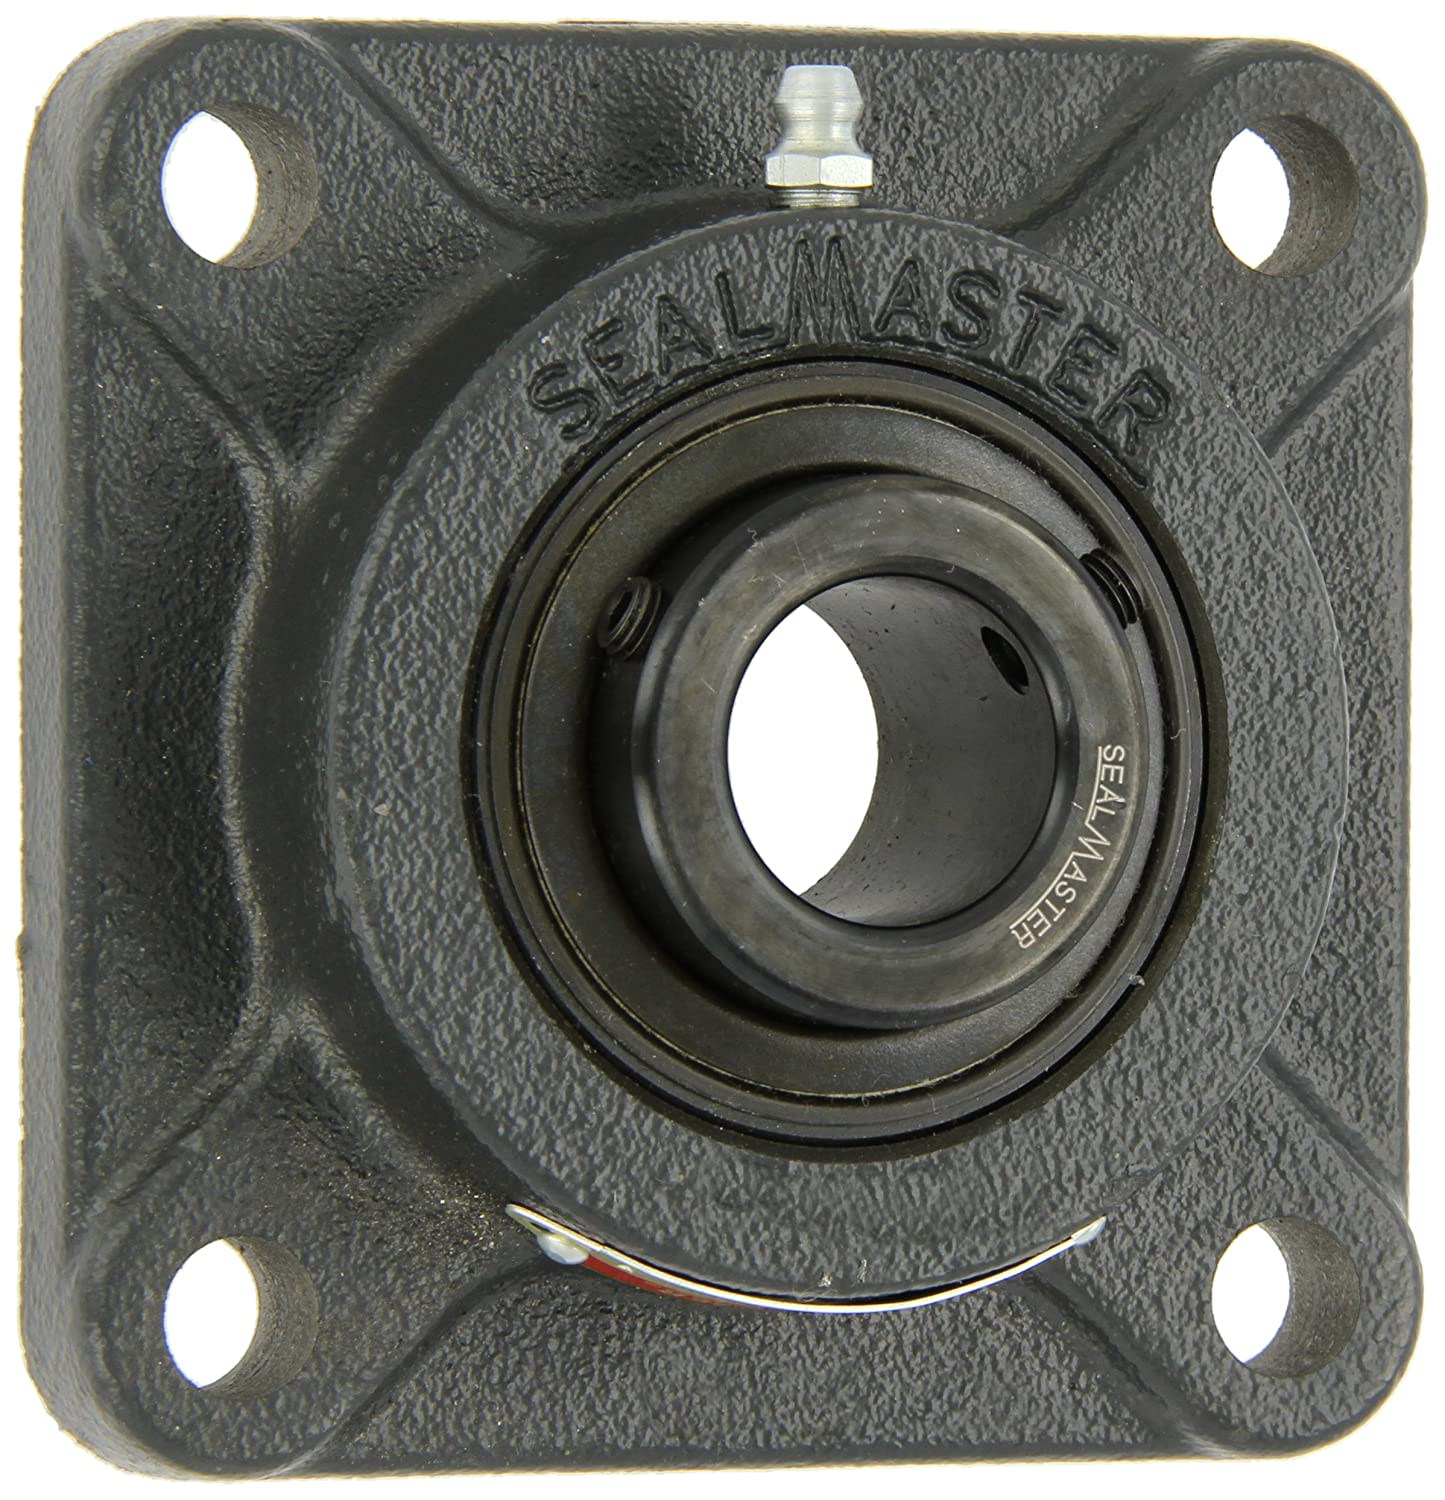 Sealmaster MSF-24 Medium Duty Flange Unit, 4 Bolt, Regreasable, Felt